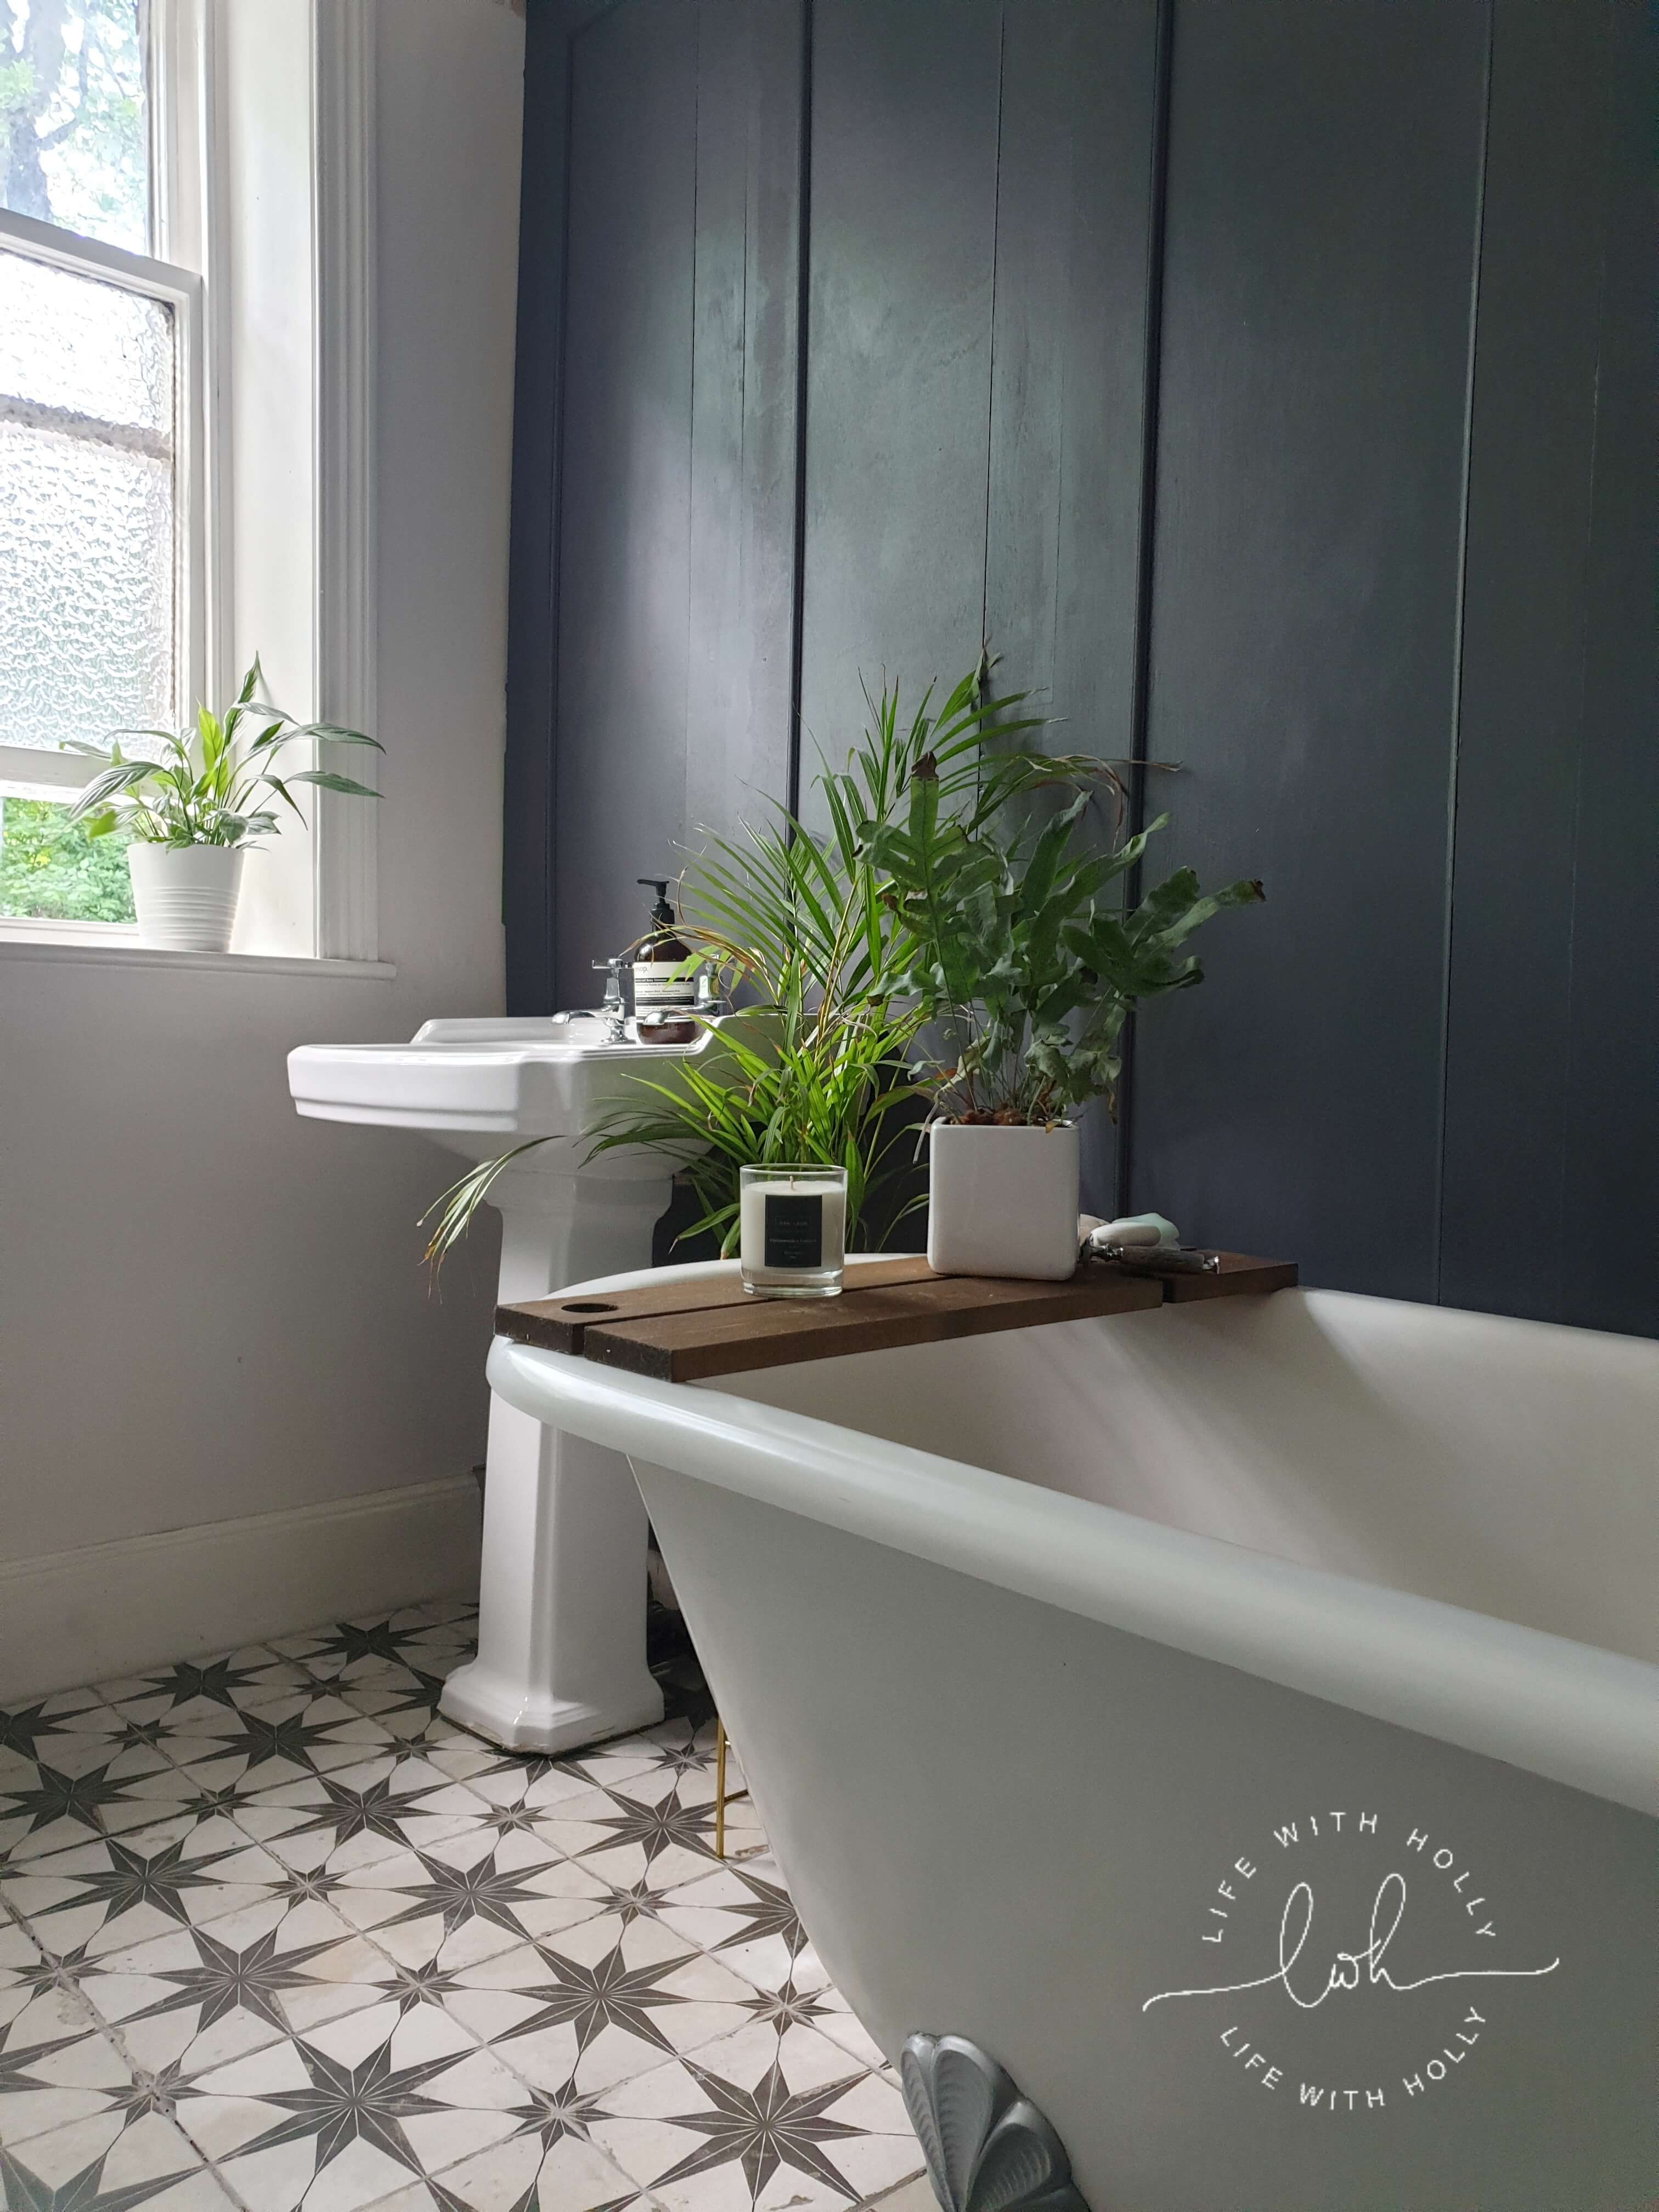 A Tutorial For Wood Panelled Walls In The Bathroom Life With Holly